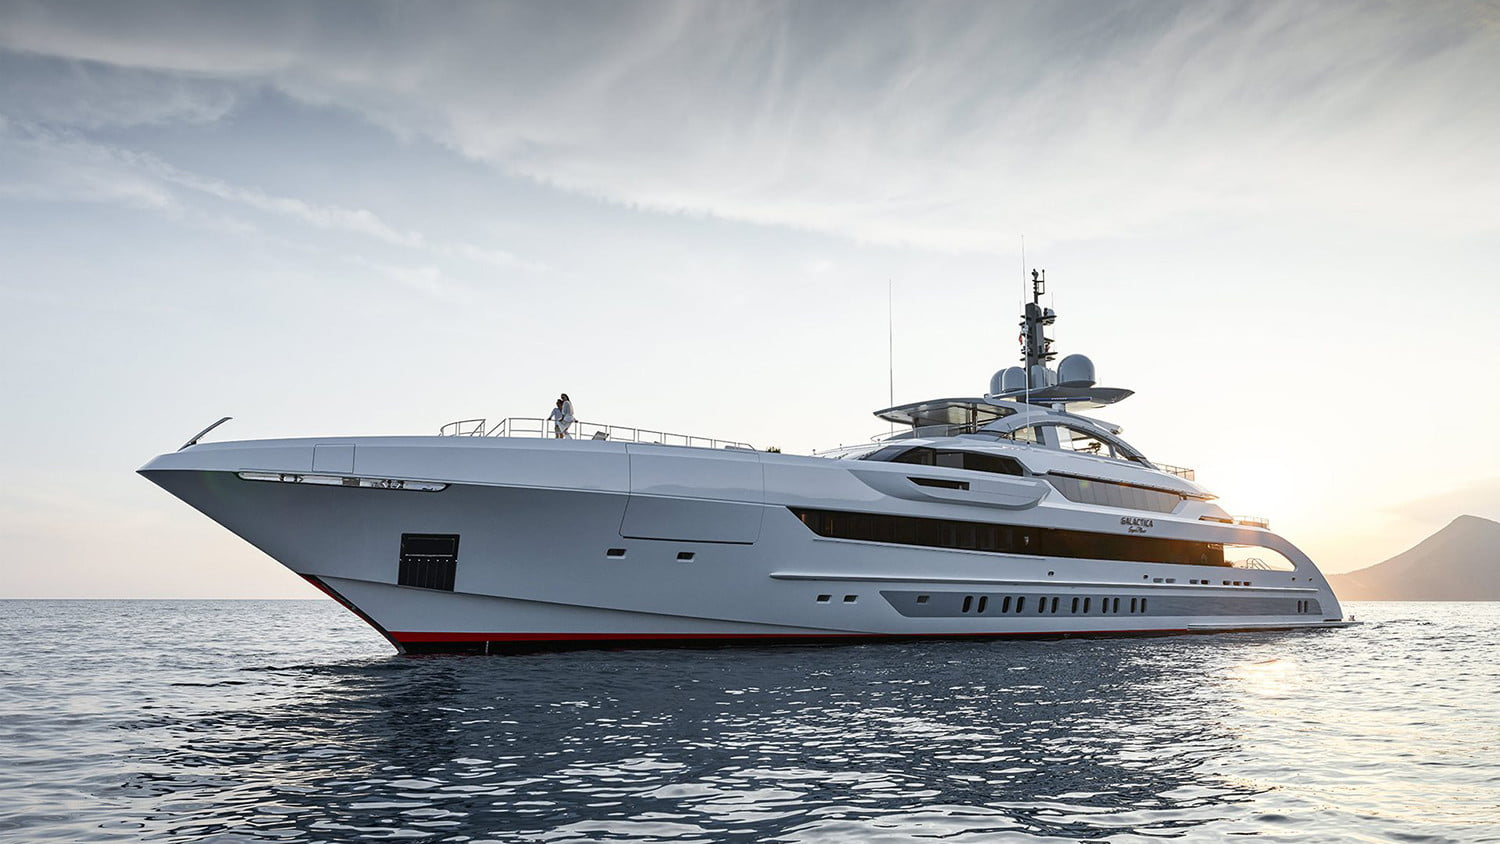 Superyachts Roundup The Biggest Most Extravagant Yachts Of All